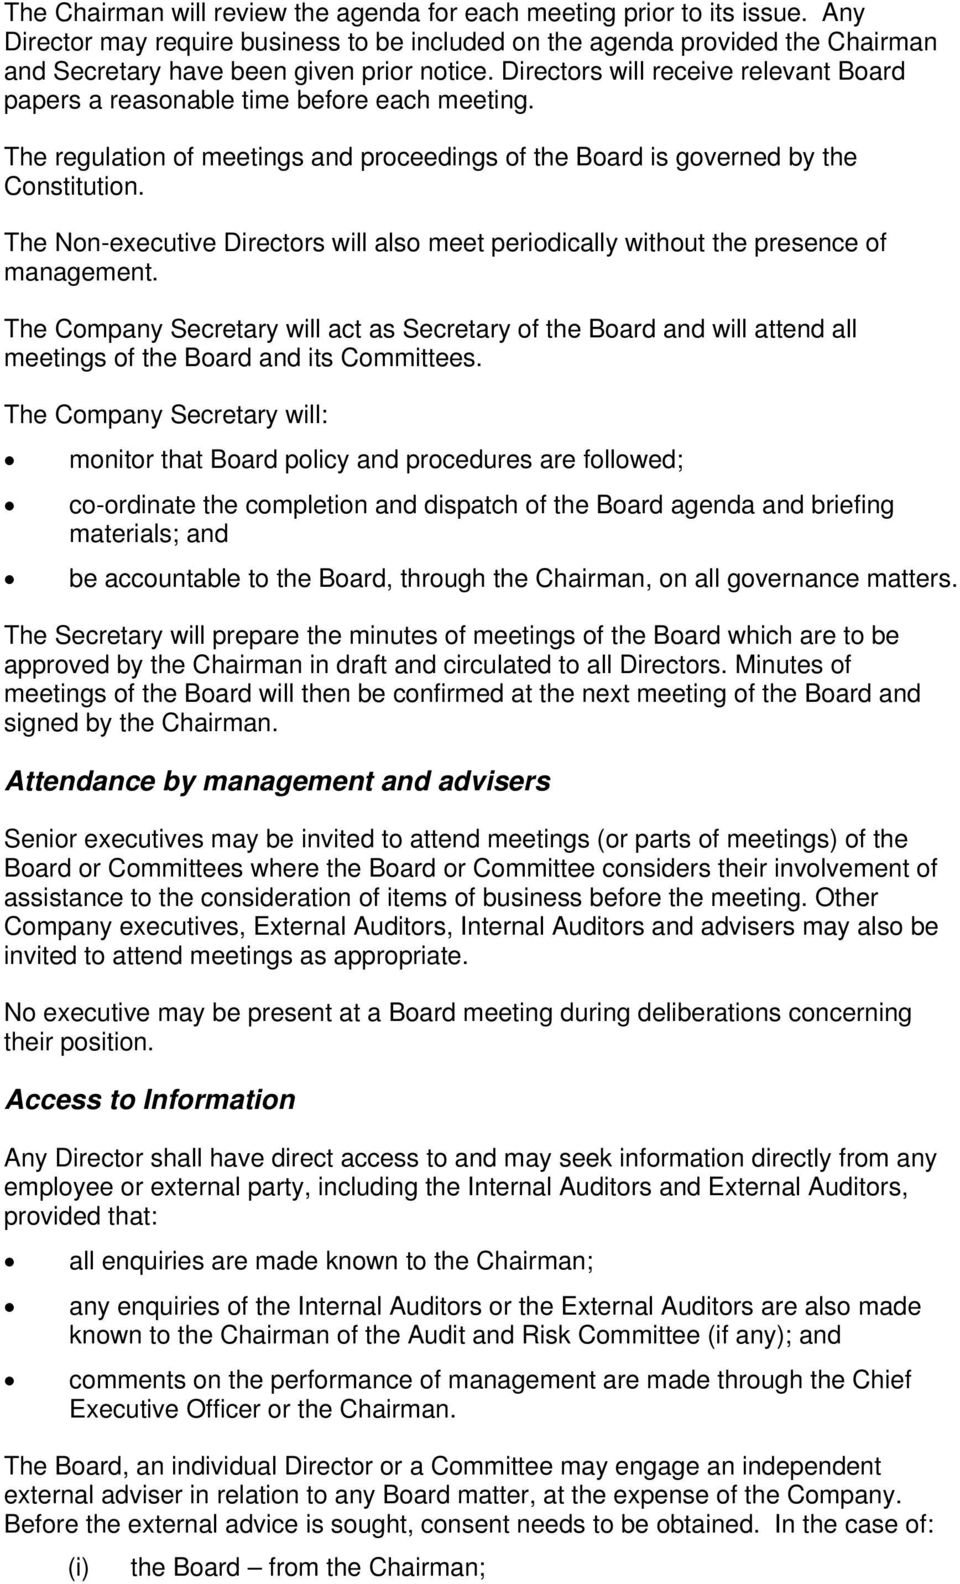 Directors will receive relevant Board papers a reasonable time before each meeting. The regulation of meetings and proceedings of the Board is governed by the Constitution.